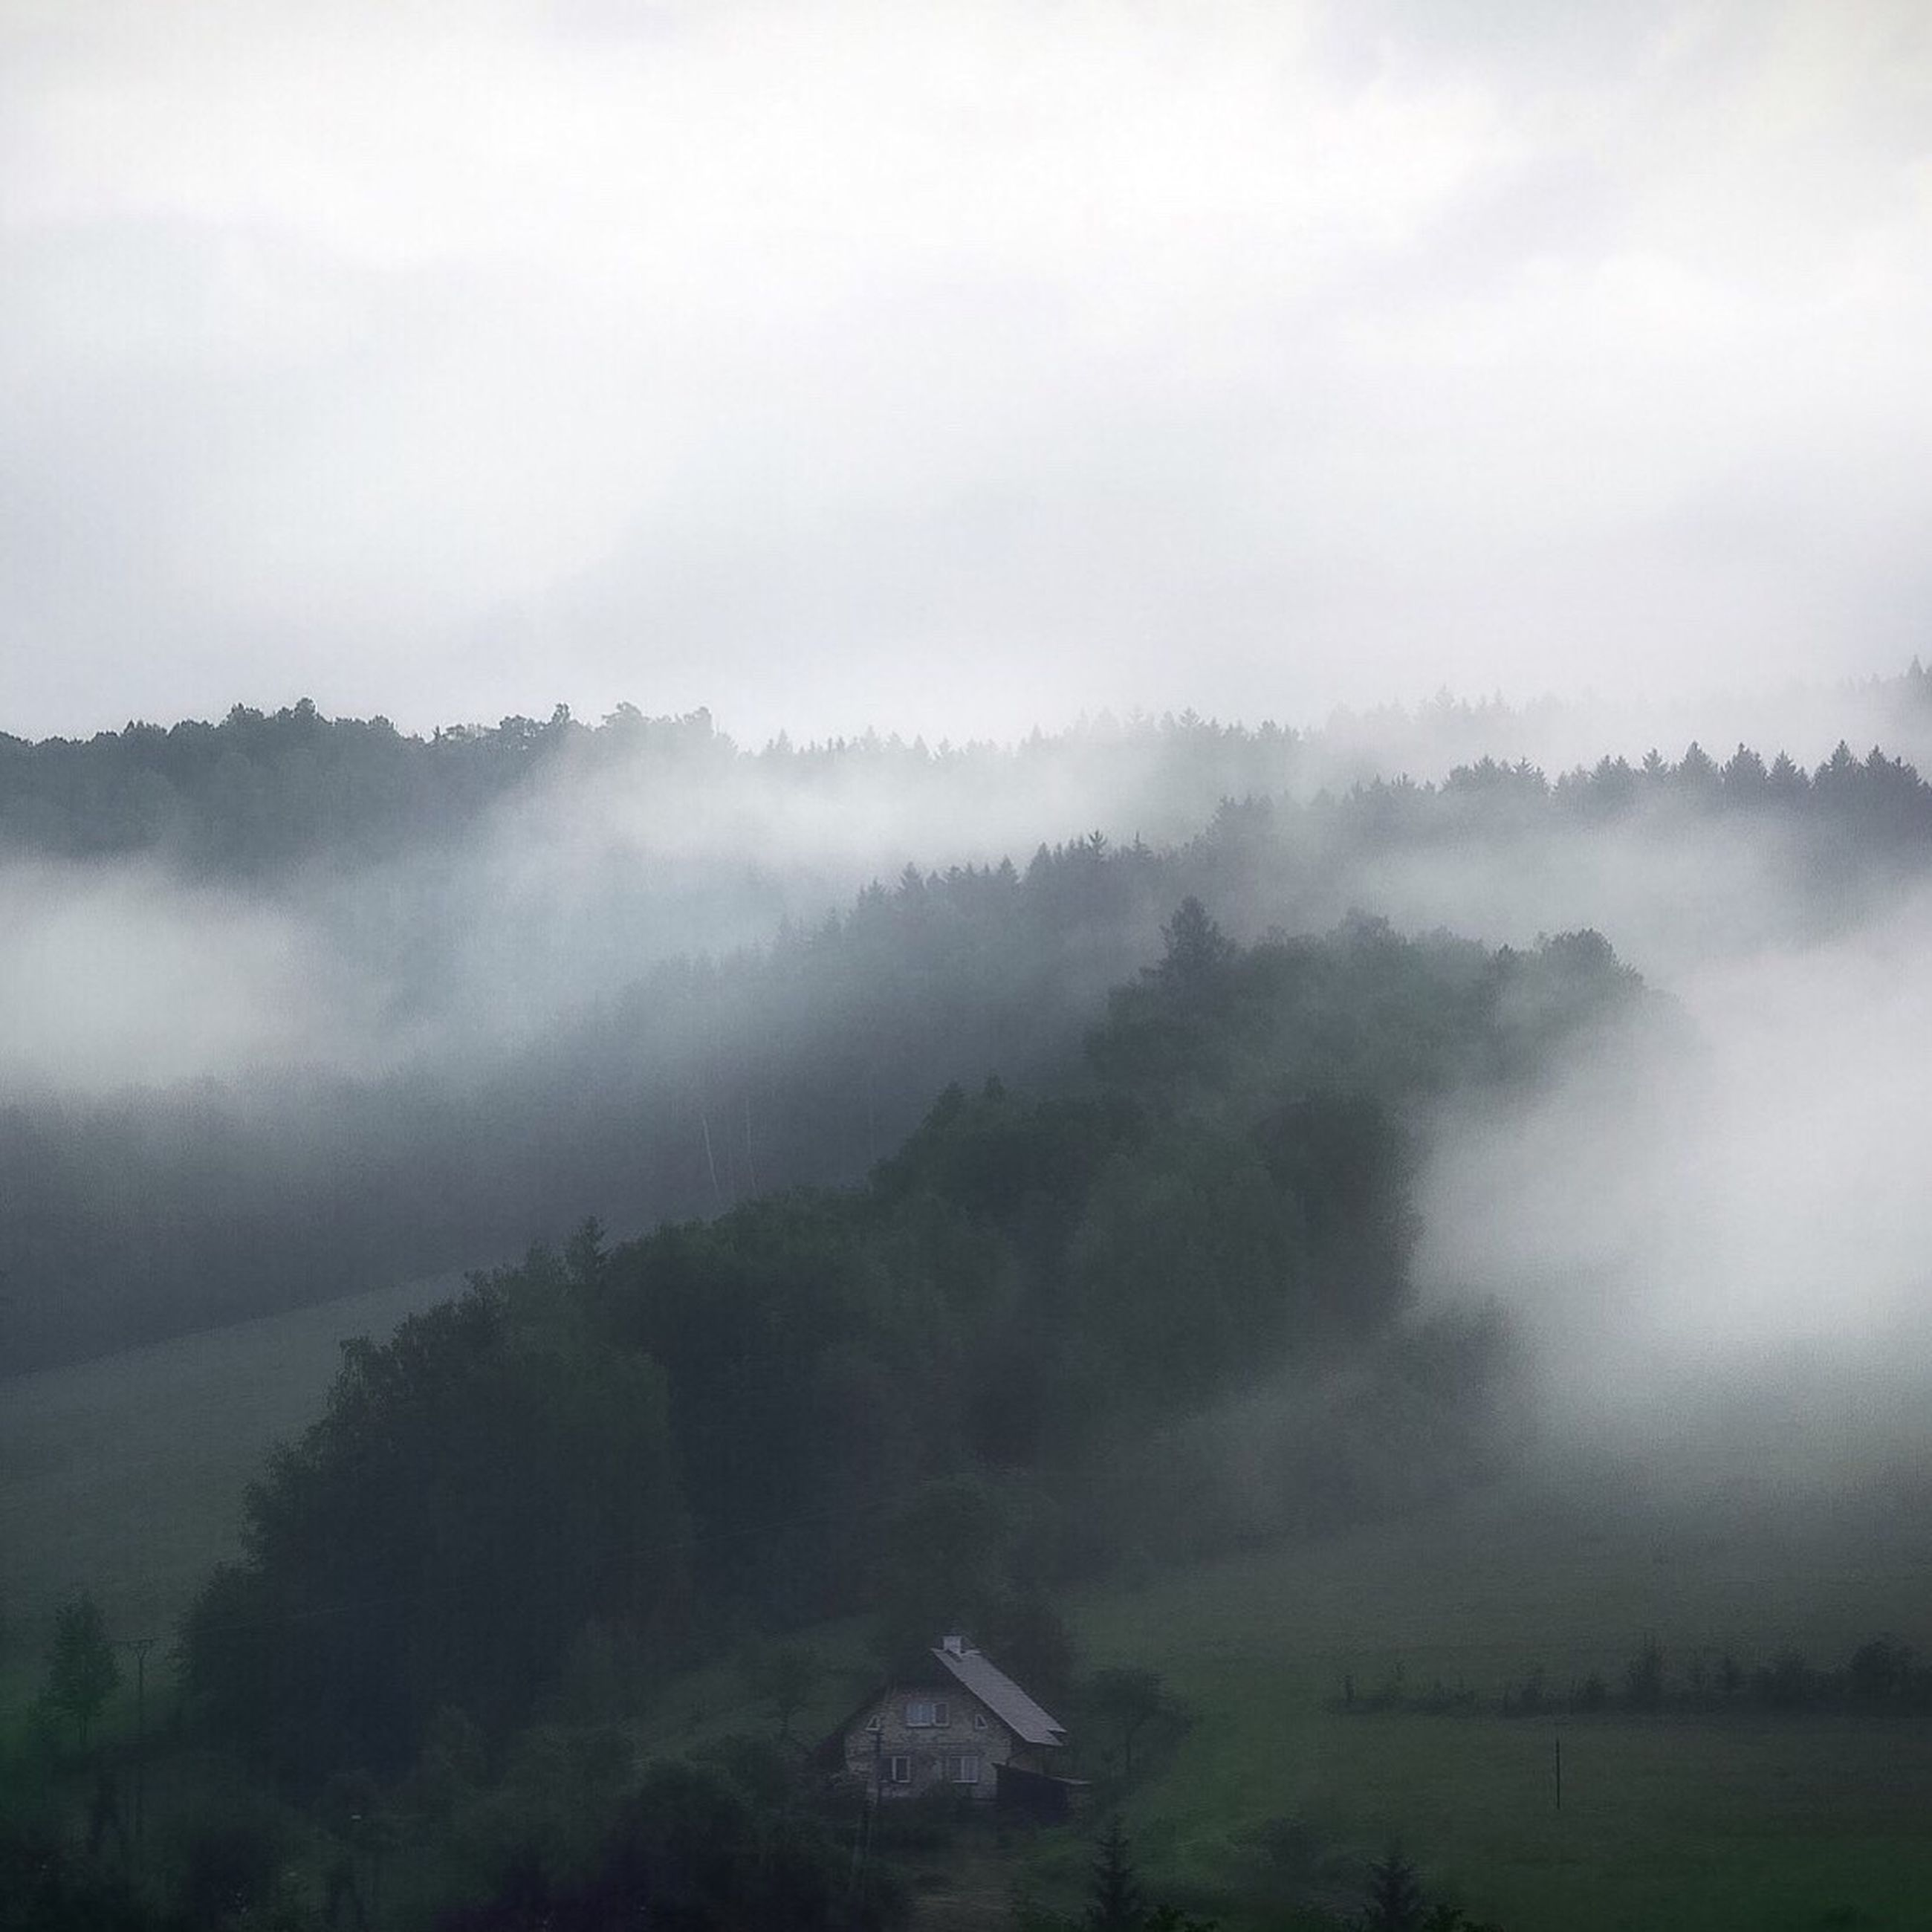 fog, foggy, house, scenics, built structure, tranquil scene, tranquility, architecture, weather, beauty in nature, building exterior, tree, mountain, nature, sky, idyllic, mist, non-urban scene, cloud - sky, growth, outdoors, day, remote, majestic, mountain range, rural scene, misty, no people